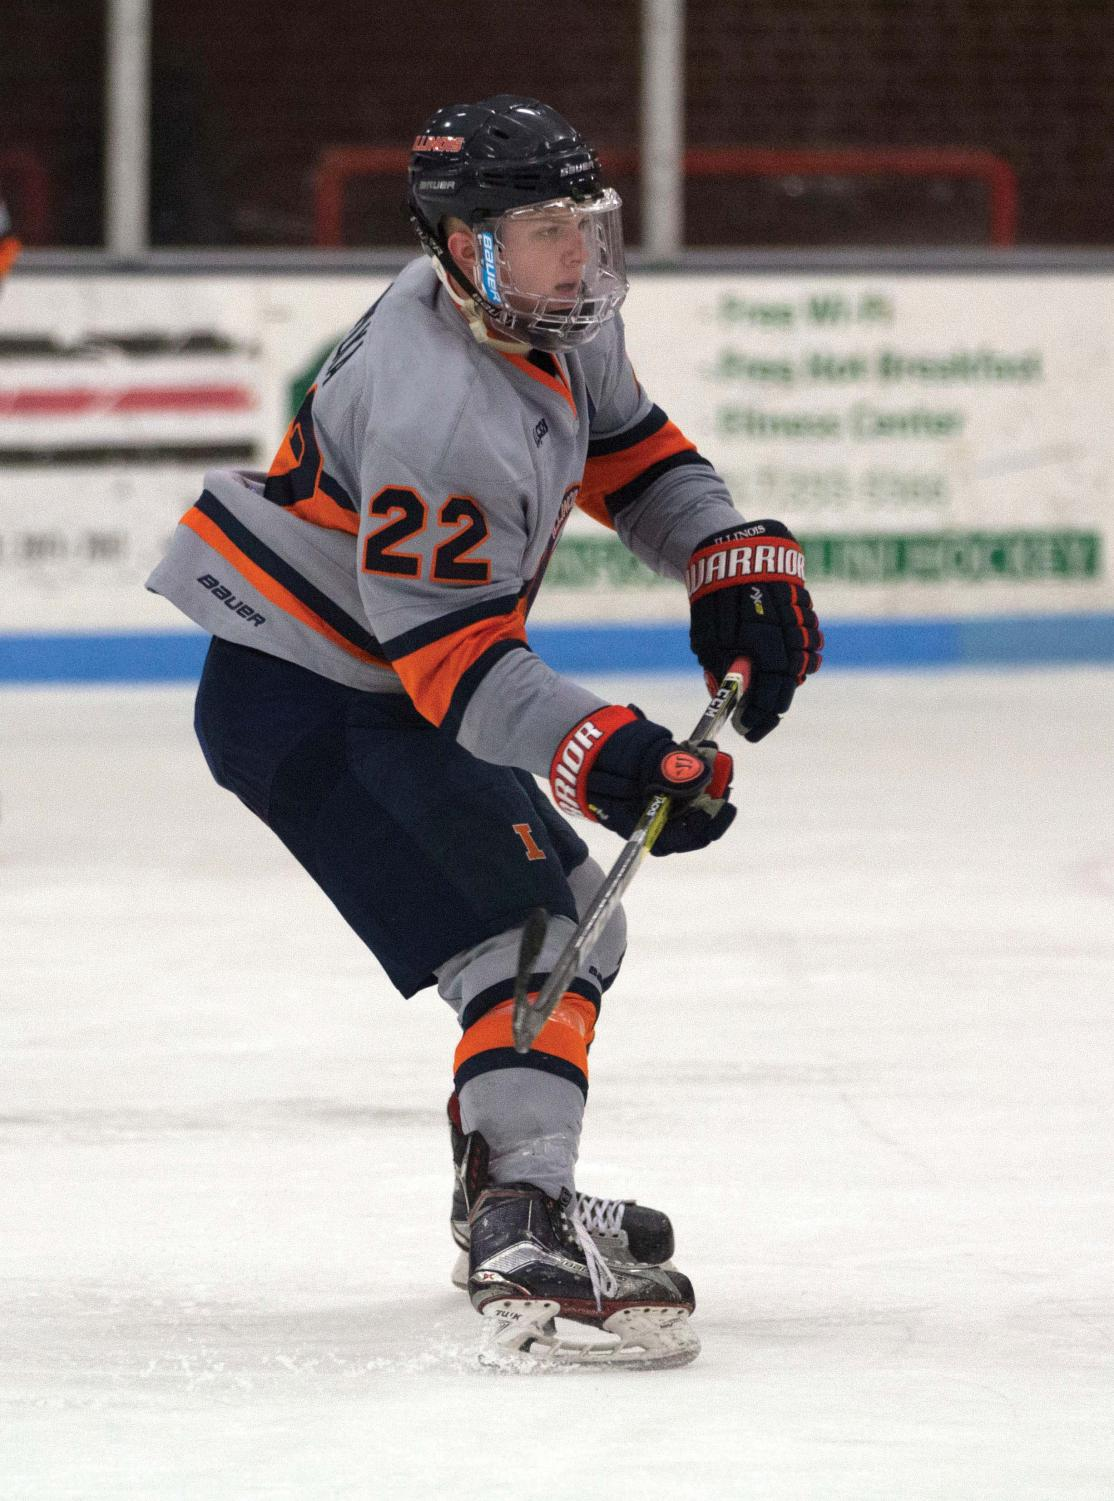 Tyler Opilka (22) passes the puck across the ice to a teammate at the Ice Arena on Saturday, Feb. 18. Illini fell to Robert Morris 3-2.